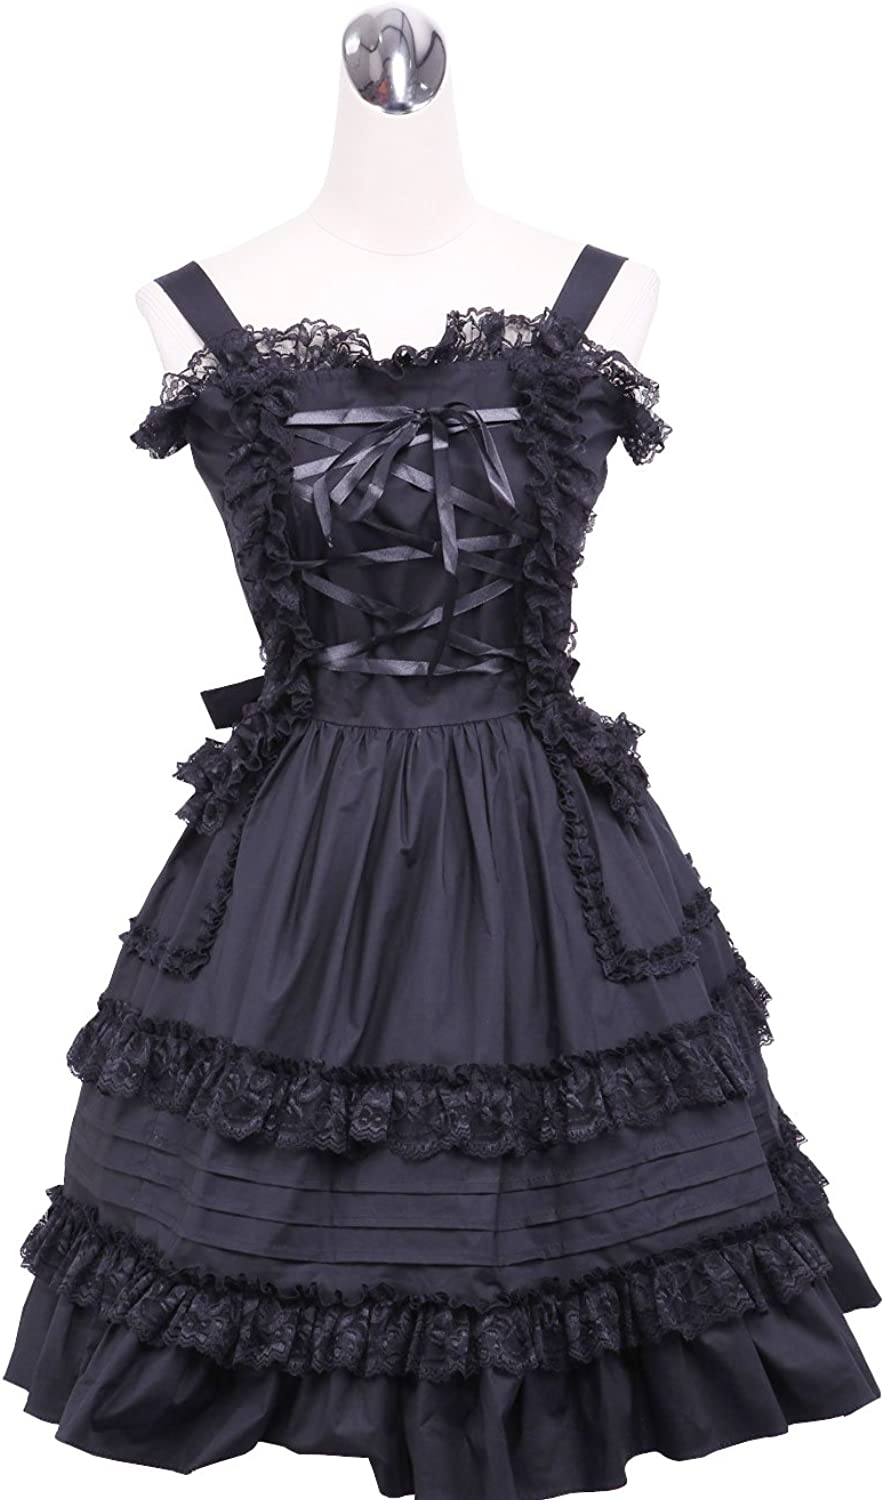 Antaina Black Cotton Halter Lace Ruffle Classic Gohtic Punk Lolita Cosplay Dress